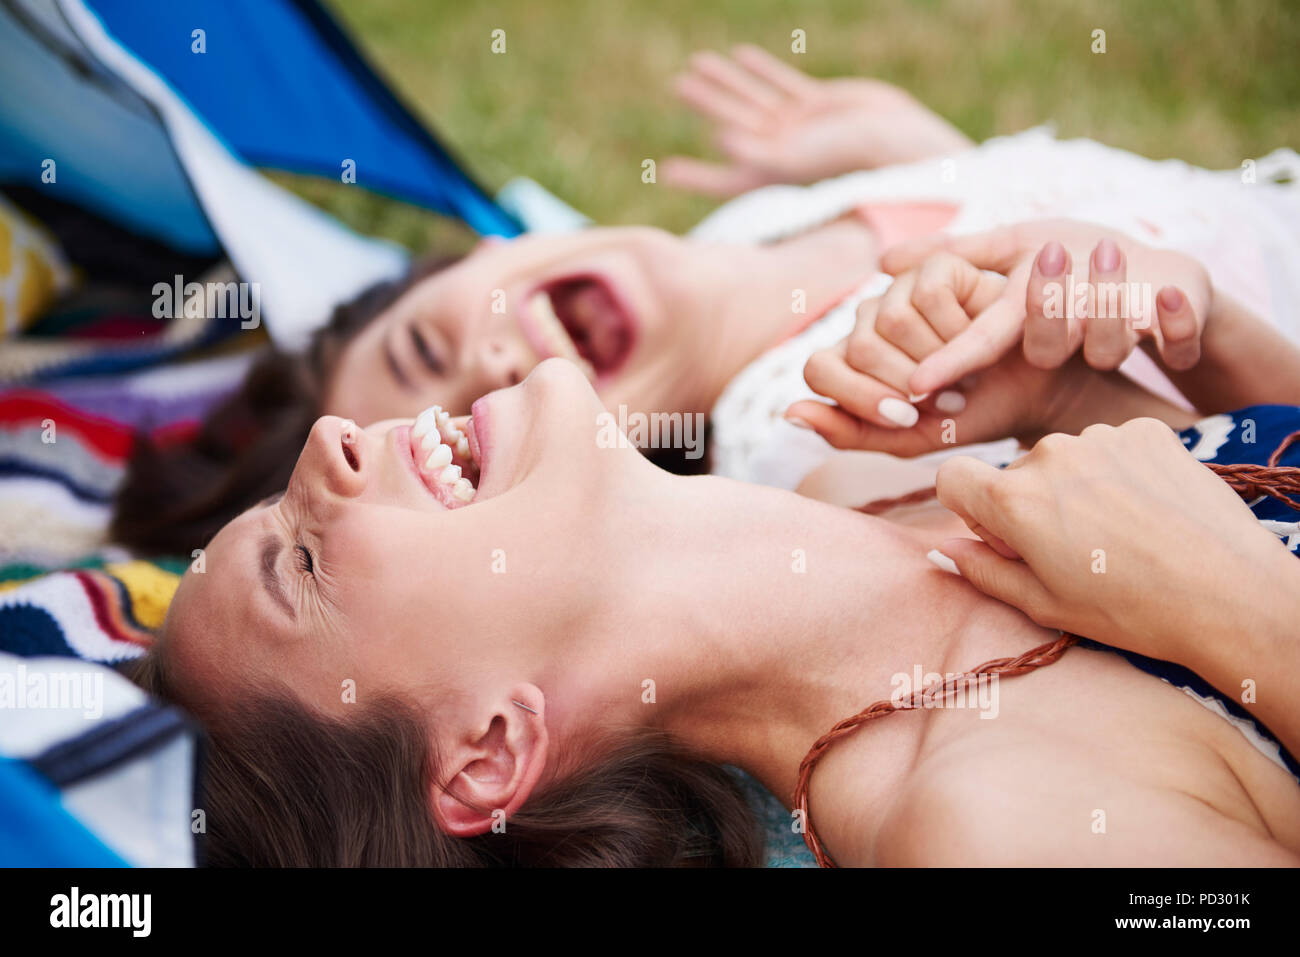 Friends lying on ground, laughing and enjoying music festival - Stock Image